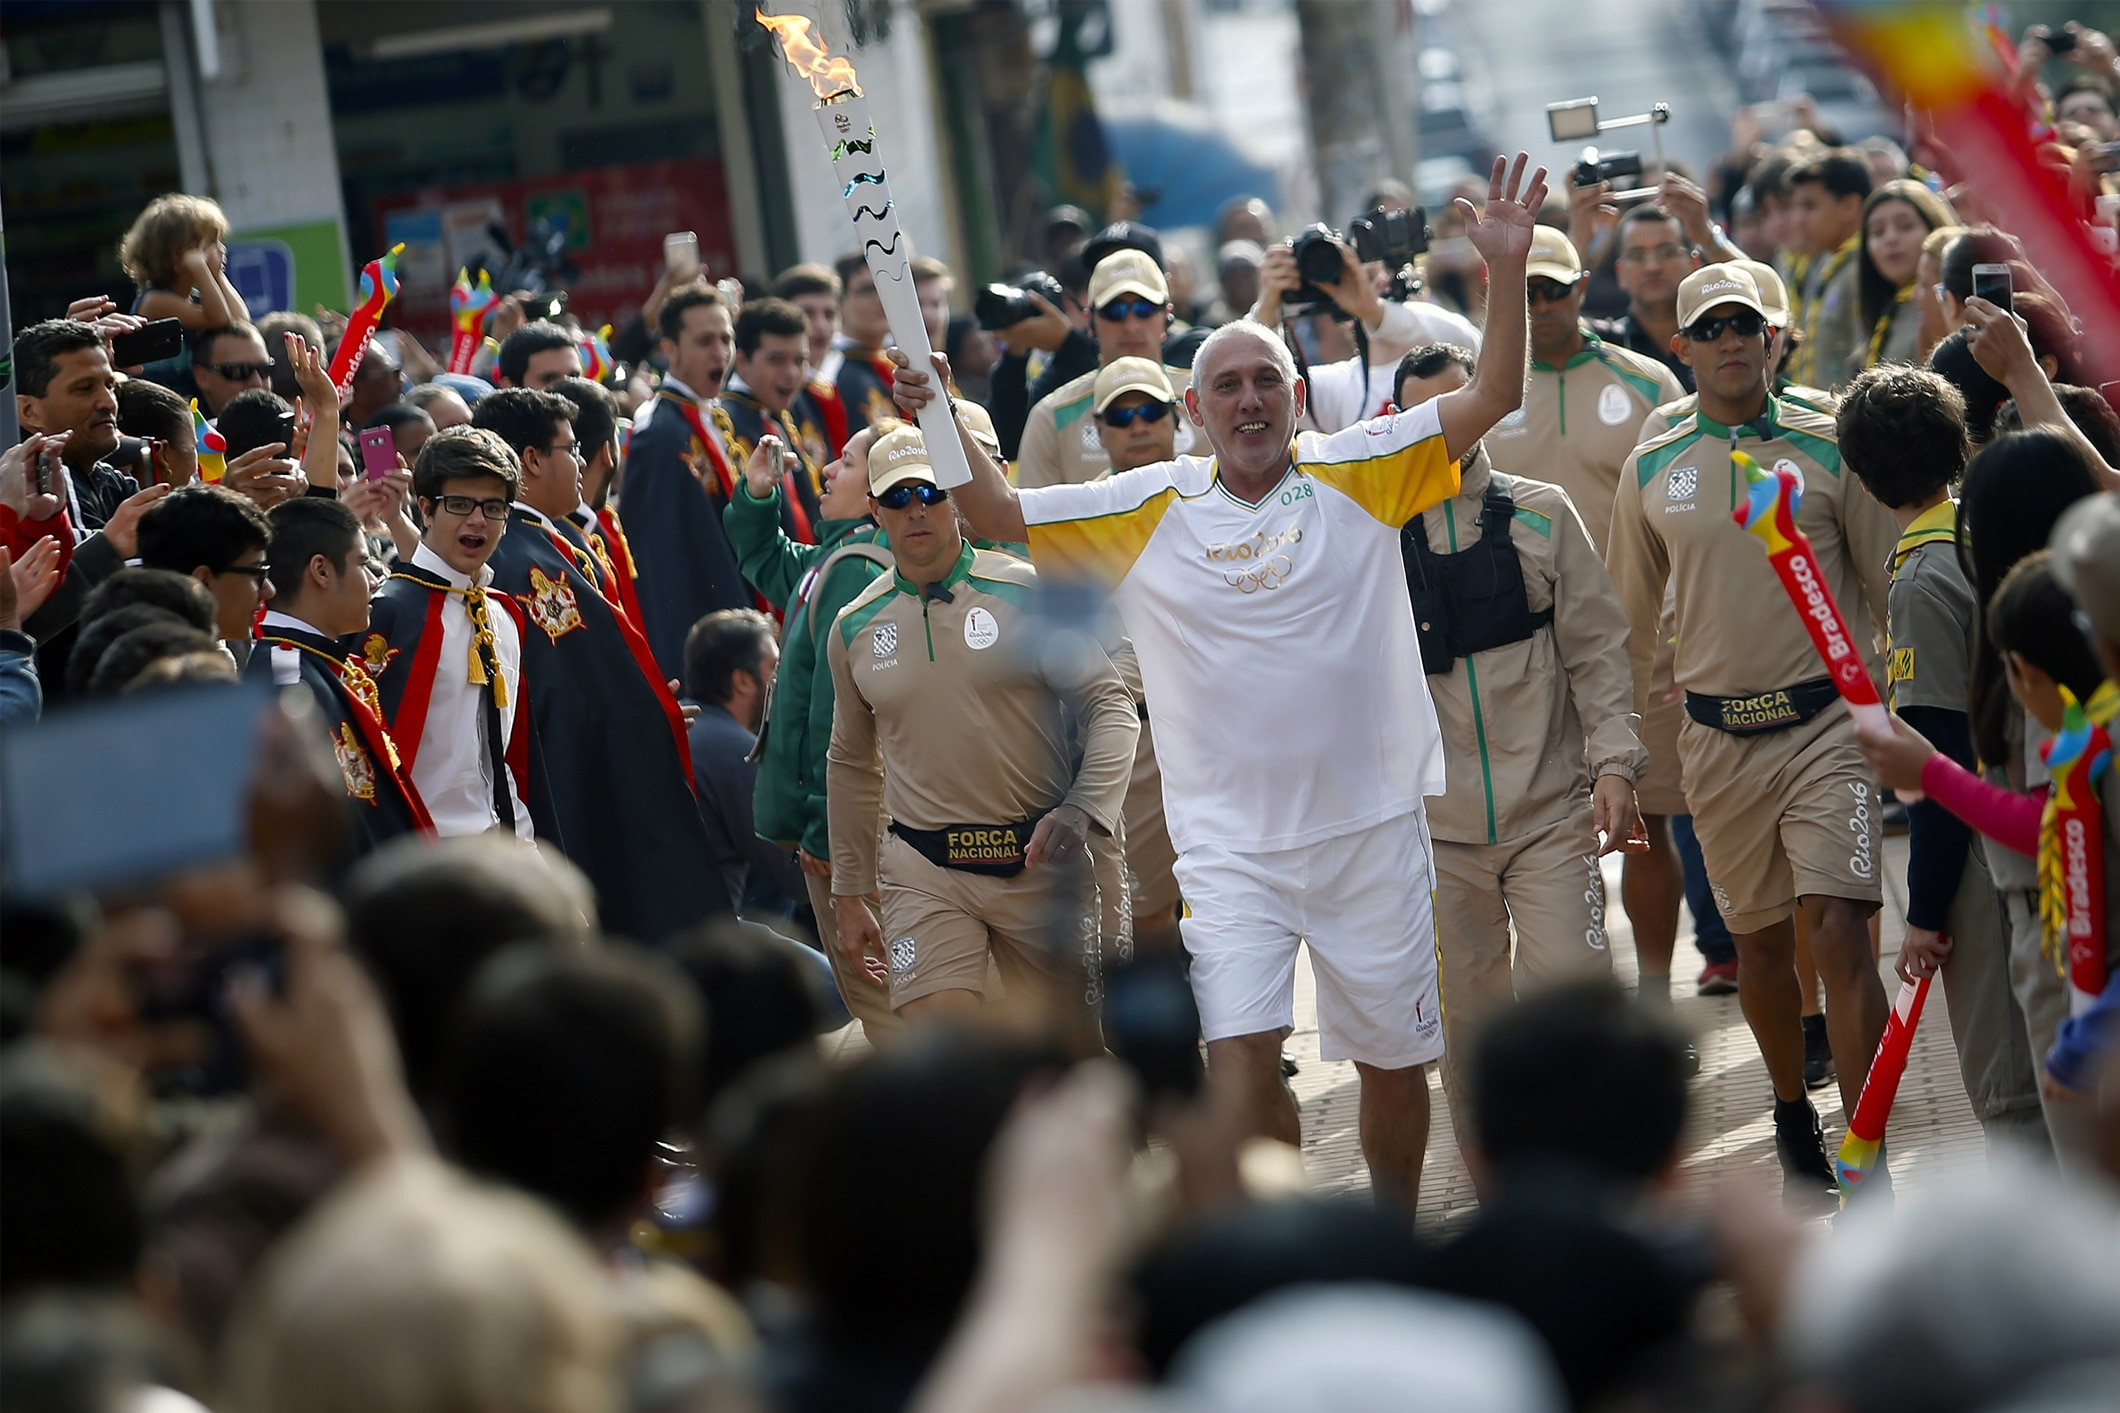 Rio 2016 Olympic Torch Relay - Day 78